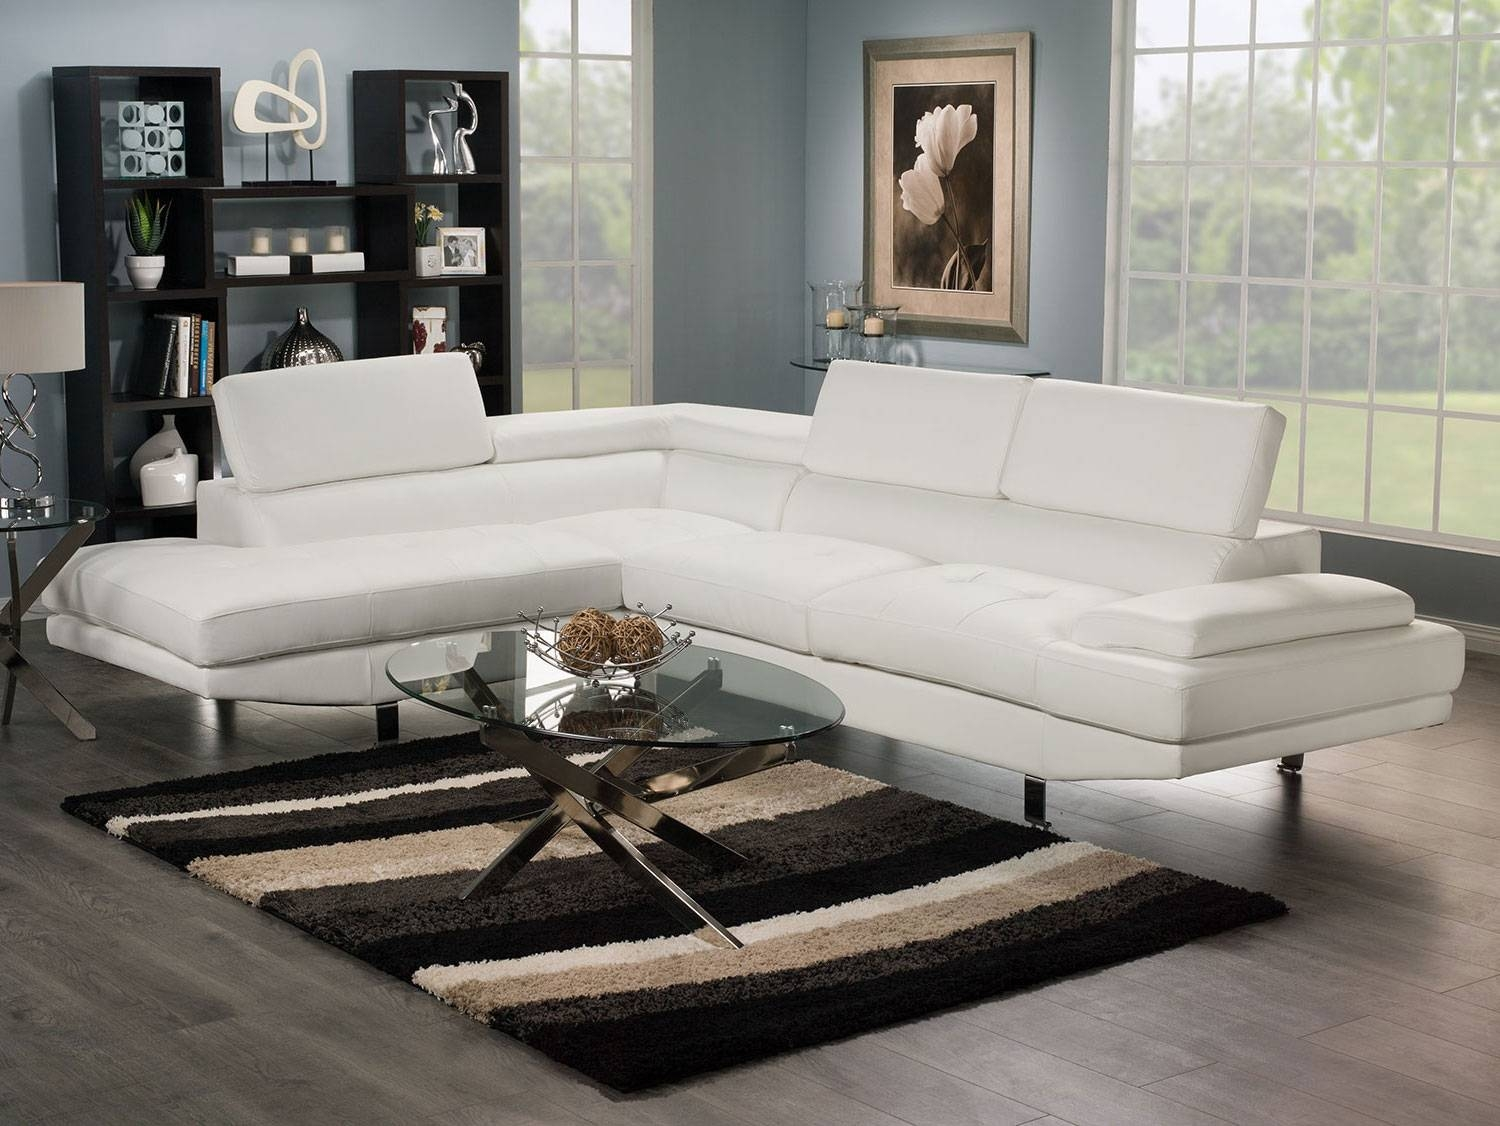 Charming Zane Sectional Sofa 16 For Your Diana Dark Brown Leather pertaining to Diana Dark Brown Leather Sectional Sofa Set (Image 13 of 30)